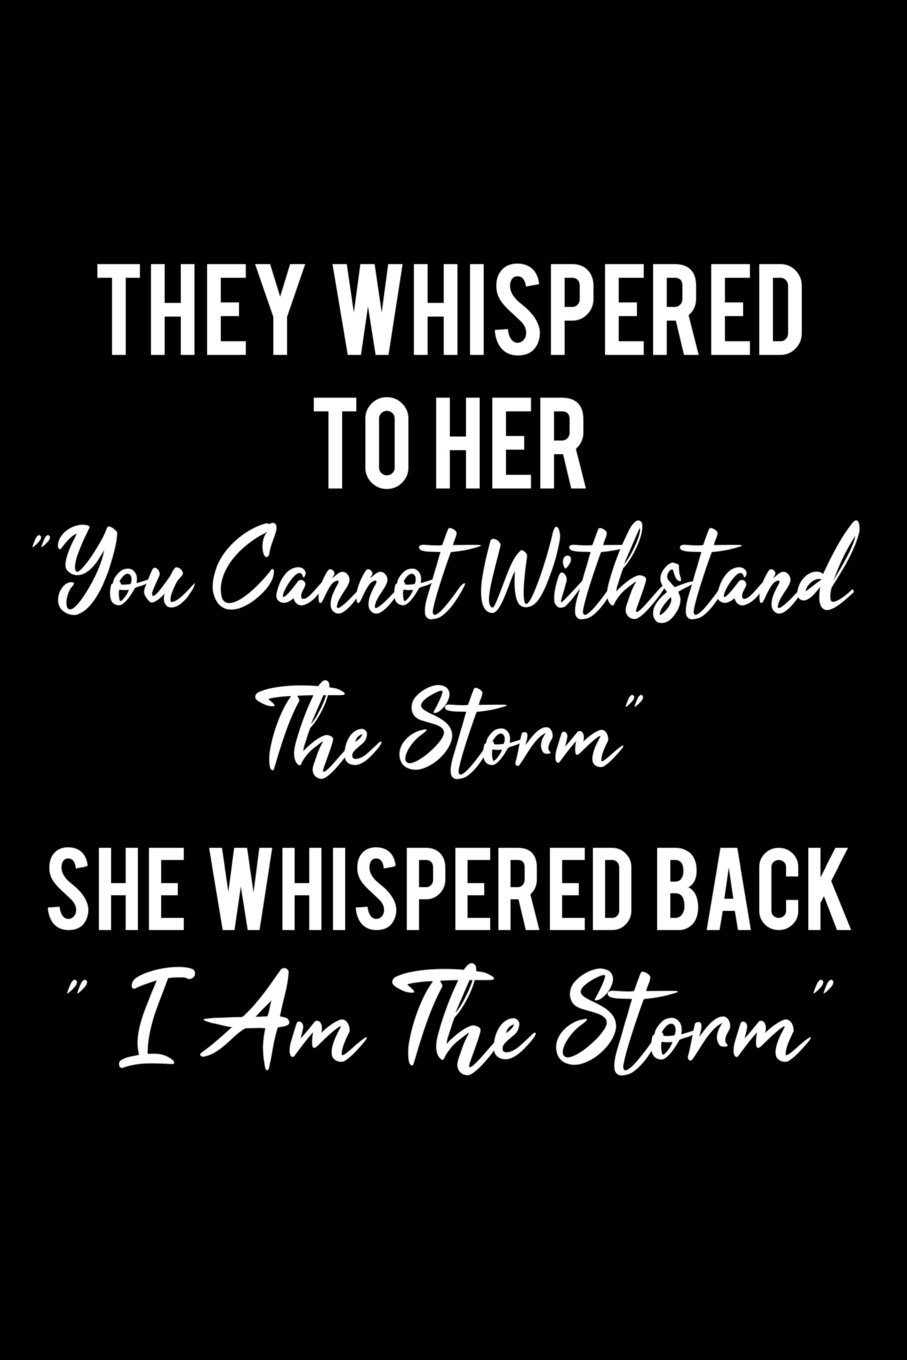 They Whispered To Her You Cannot Withstand The Storm I Am The Storm Writing Journal Lined Diary Notebook For Her Deep Quotes Not Only Journals I Live To Journal 9781548963132 Amazon Com Books Created by alvaro postigo photography 3 years ago. you cannot withstand the storm i